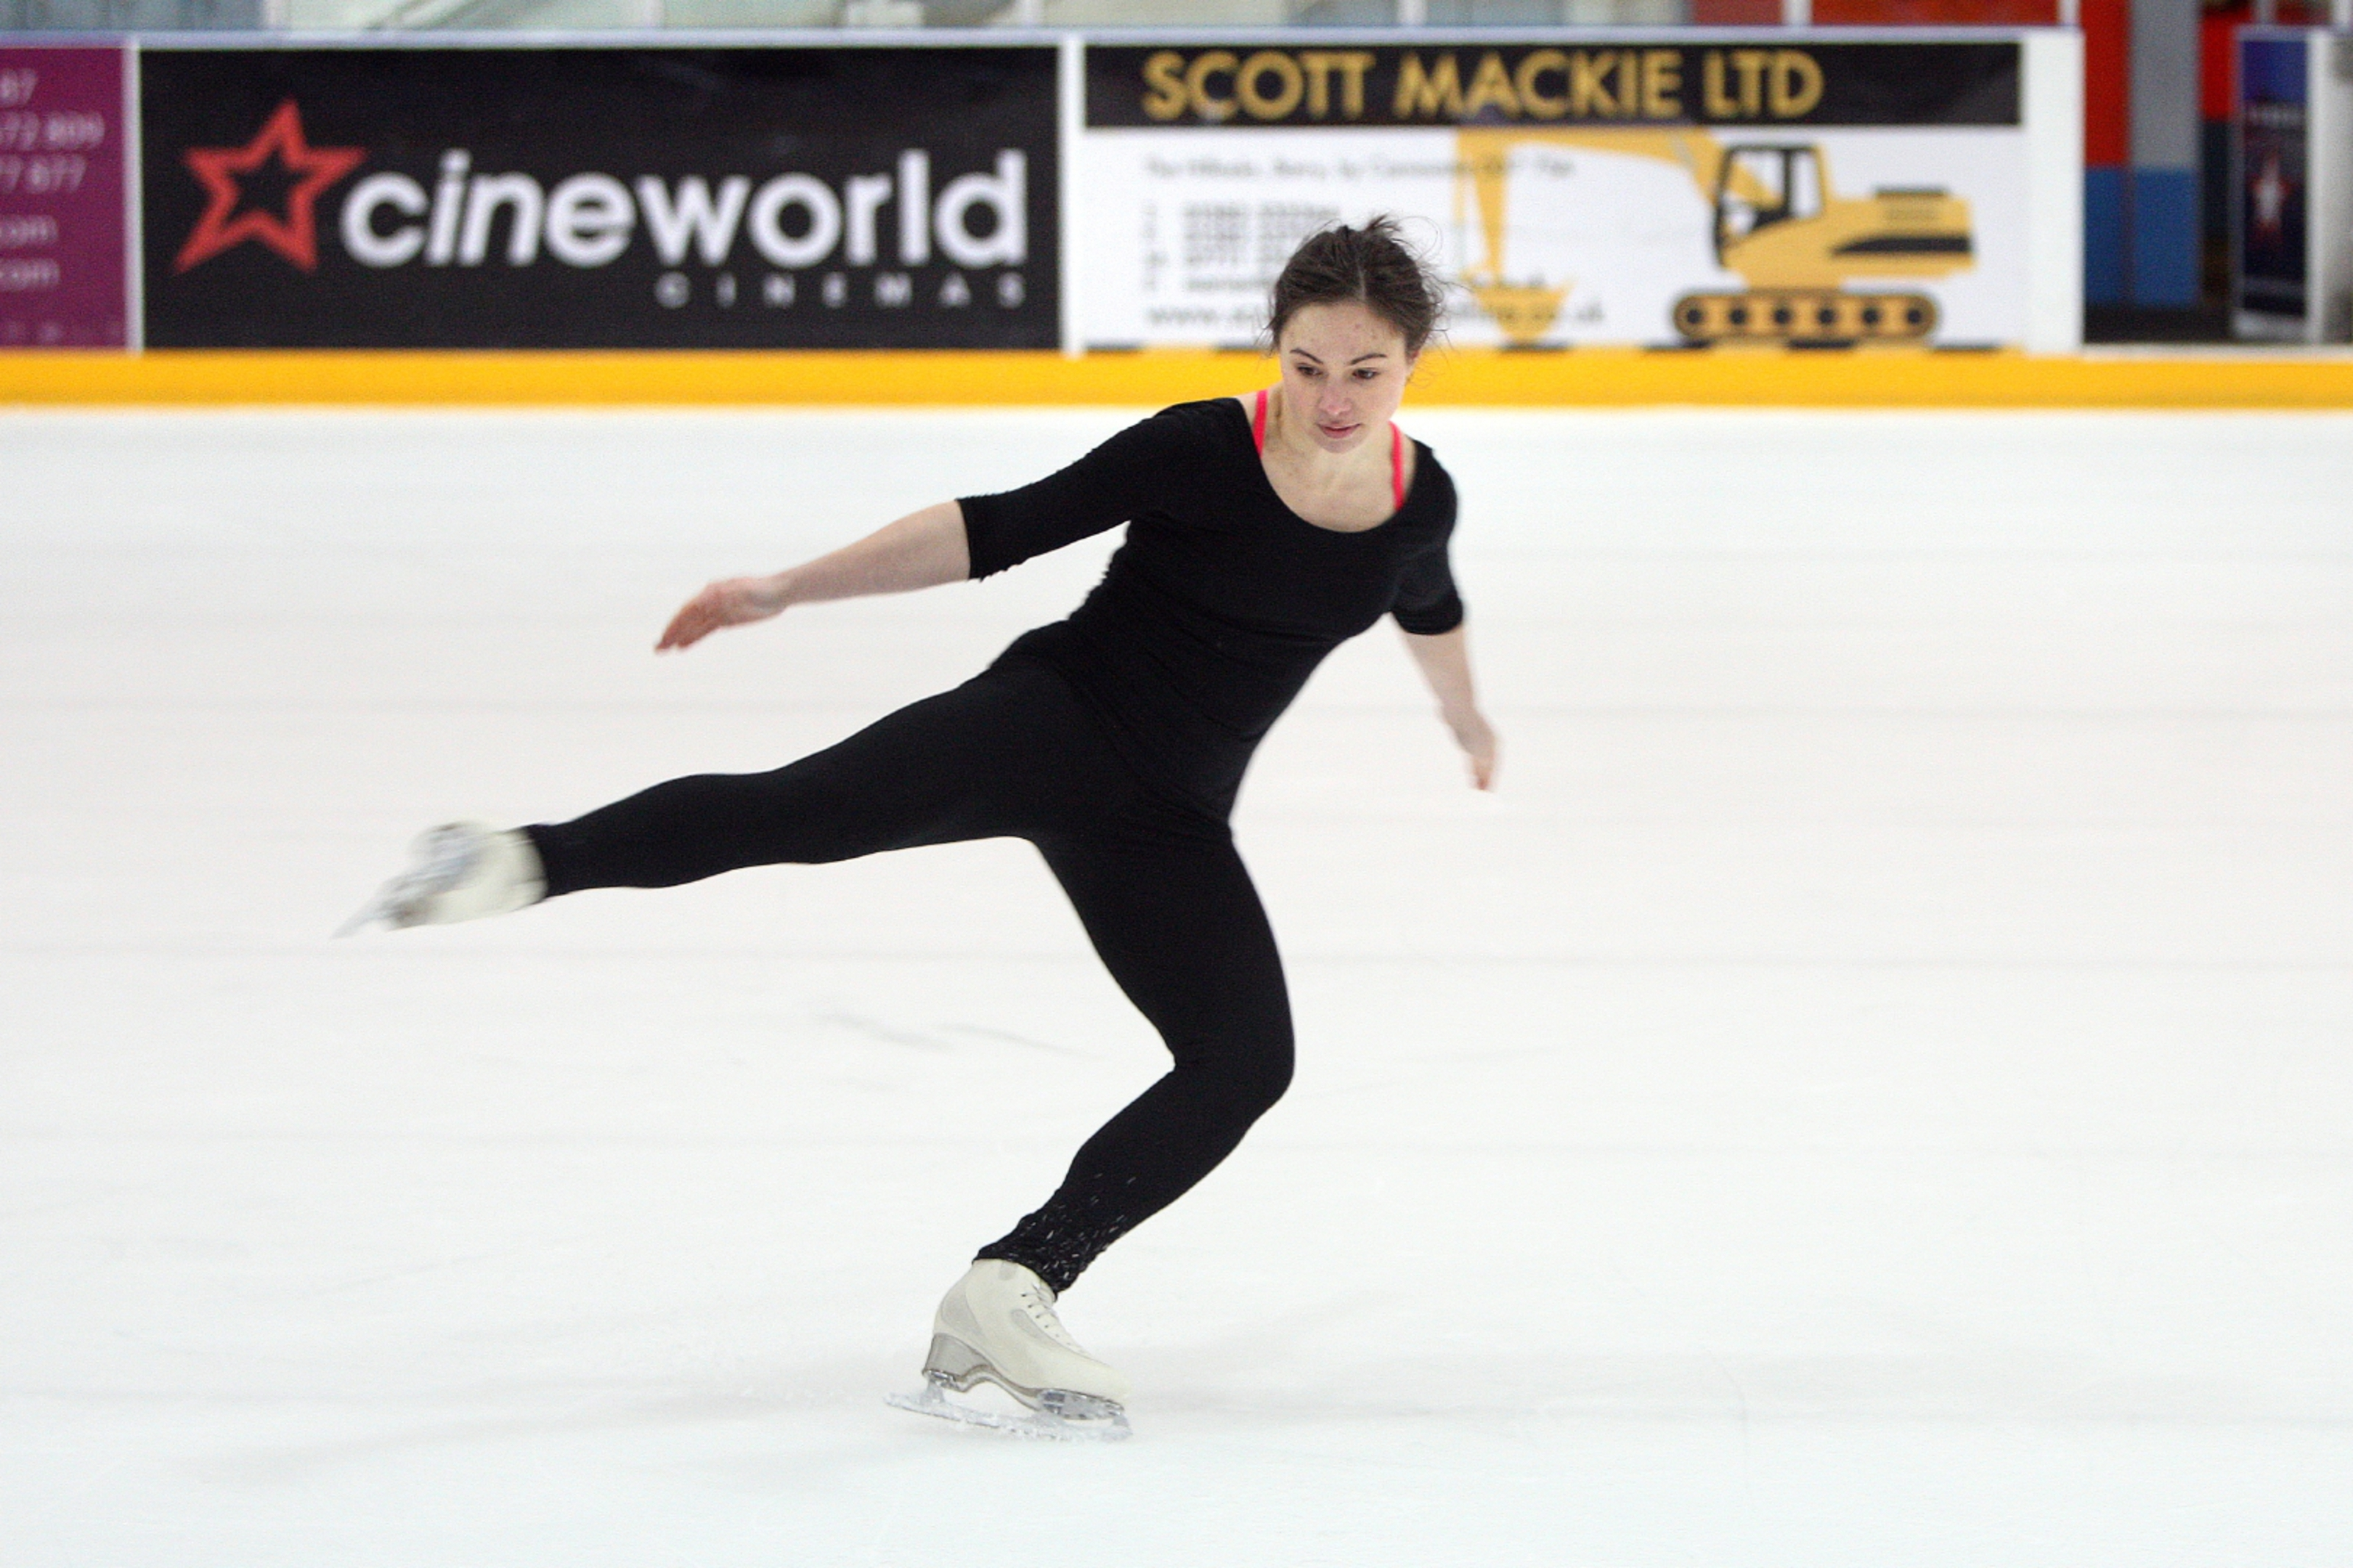 Katie Powell on the ice.